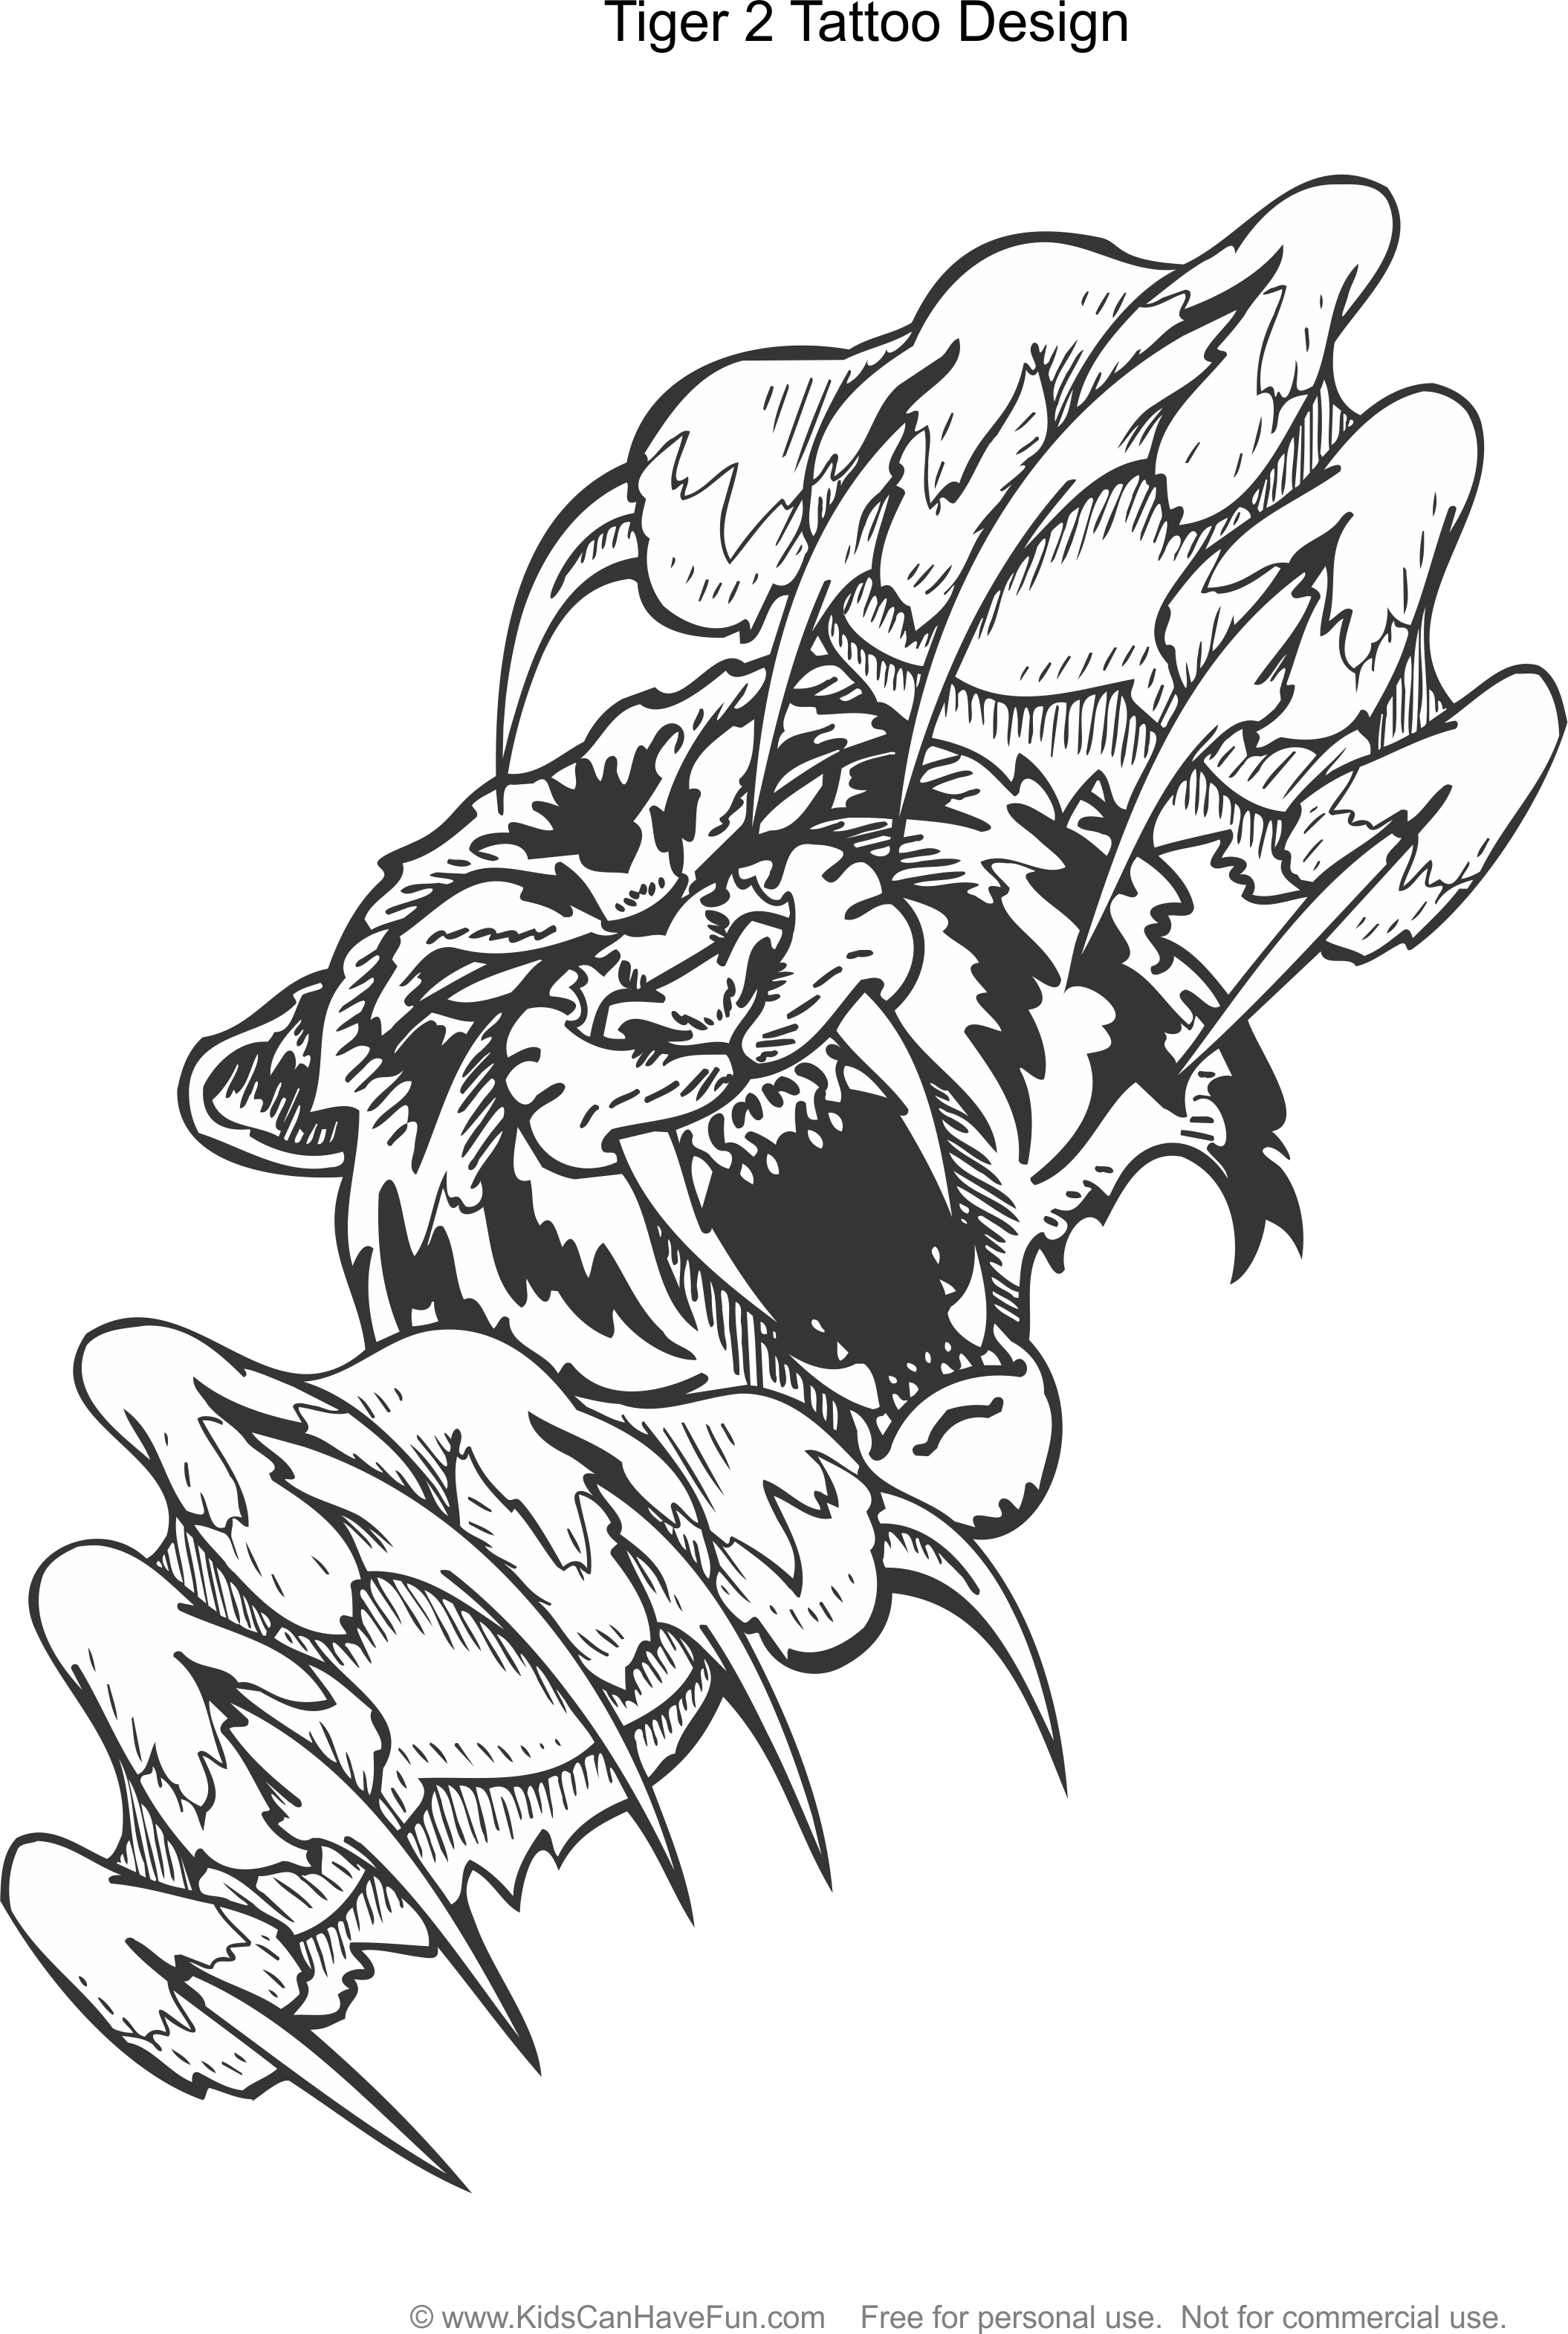 Tiger 2 Tattoo Design Coloring Page Http Www Kidscanhavefun Com Tattoo Coloring Htm Tiger Tattoo Color Tattoo Coloring Book Coloring Pages Color Tattoo